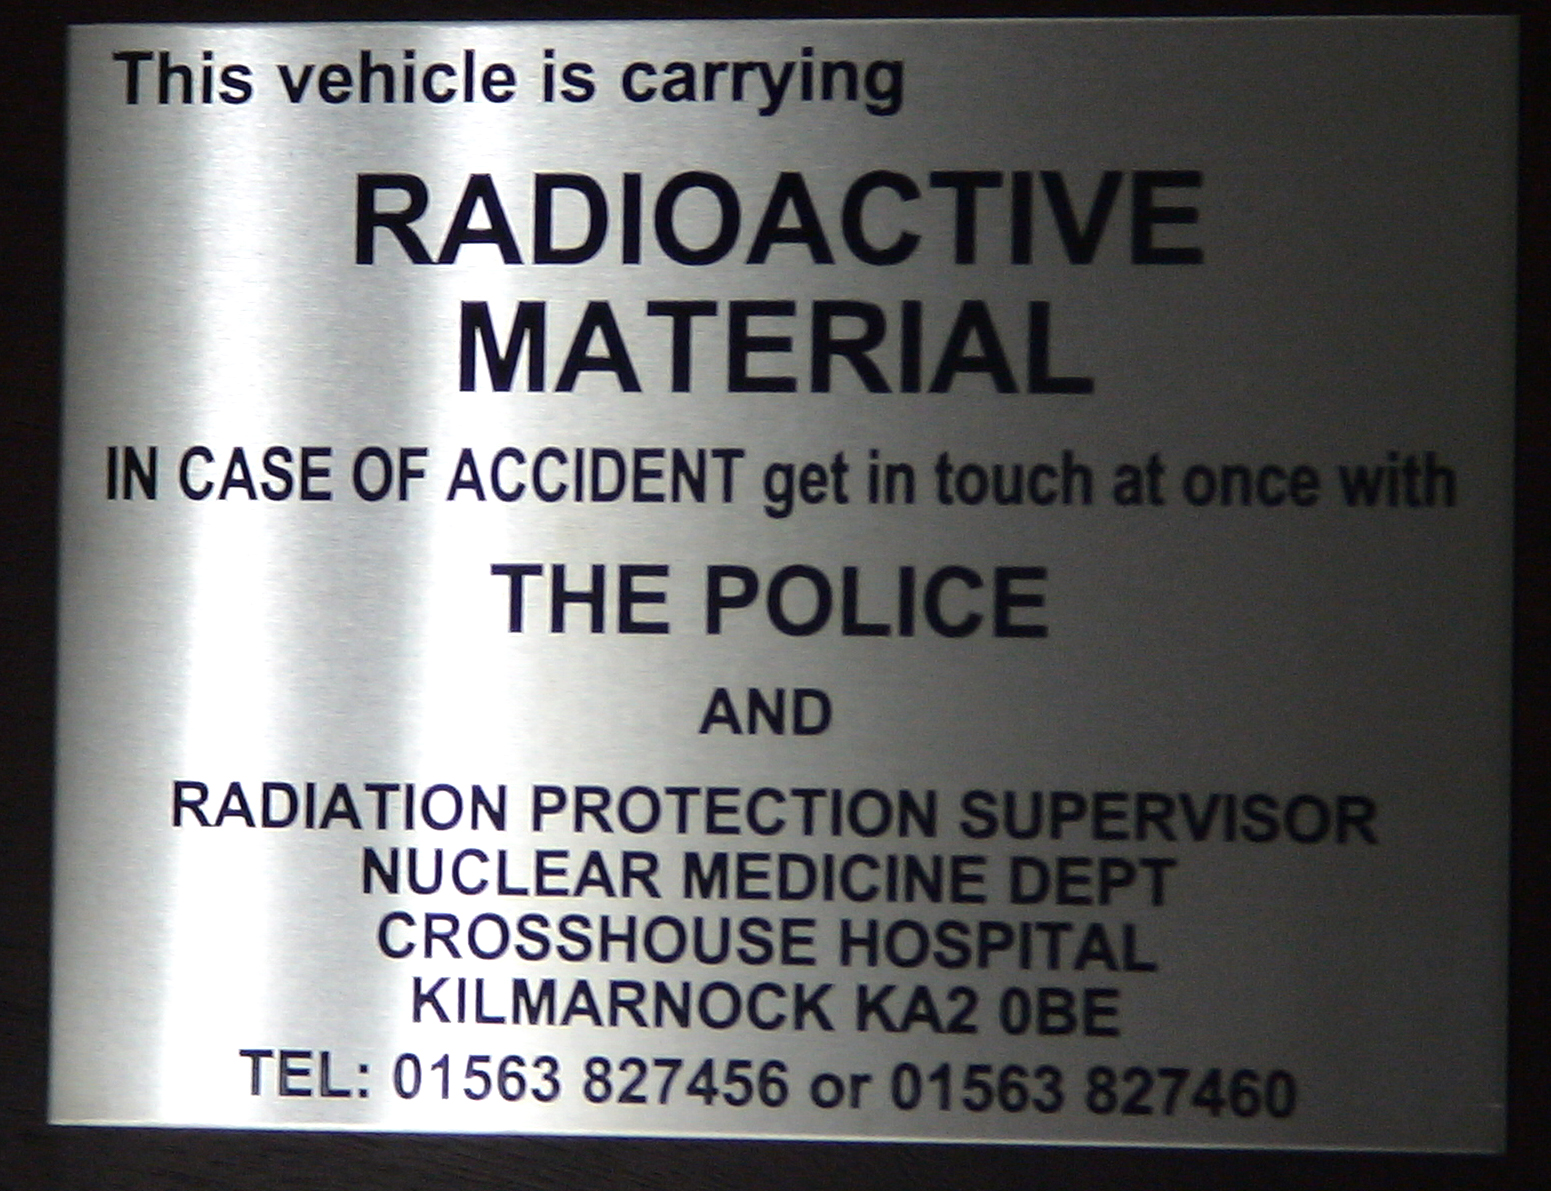 chemically etched satin stainless steel  - for important permanent warning information